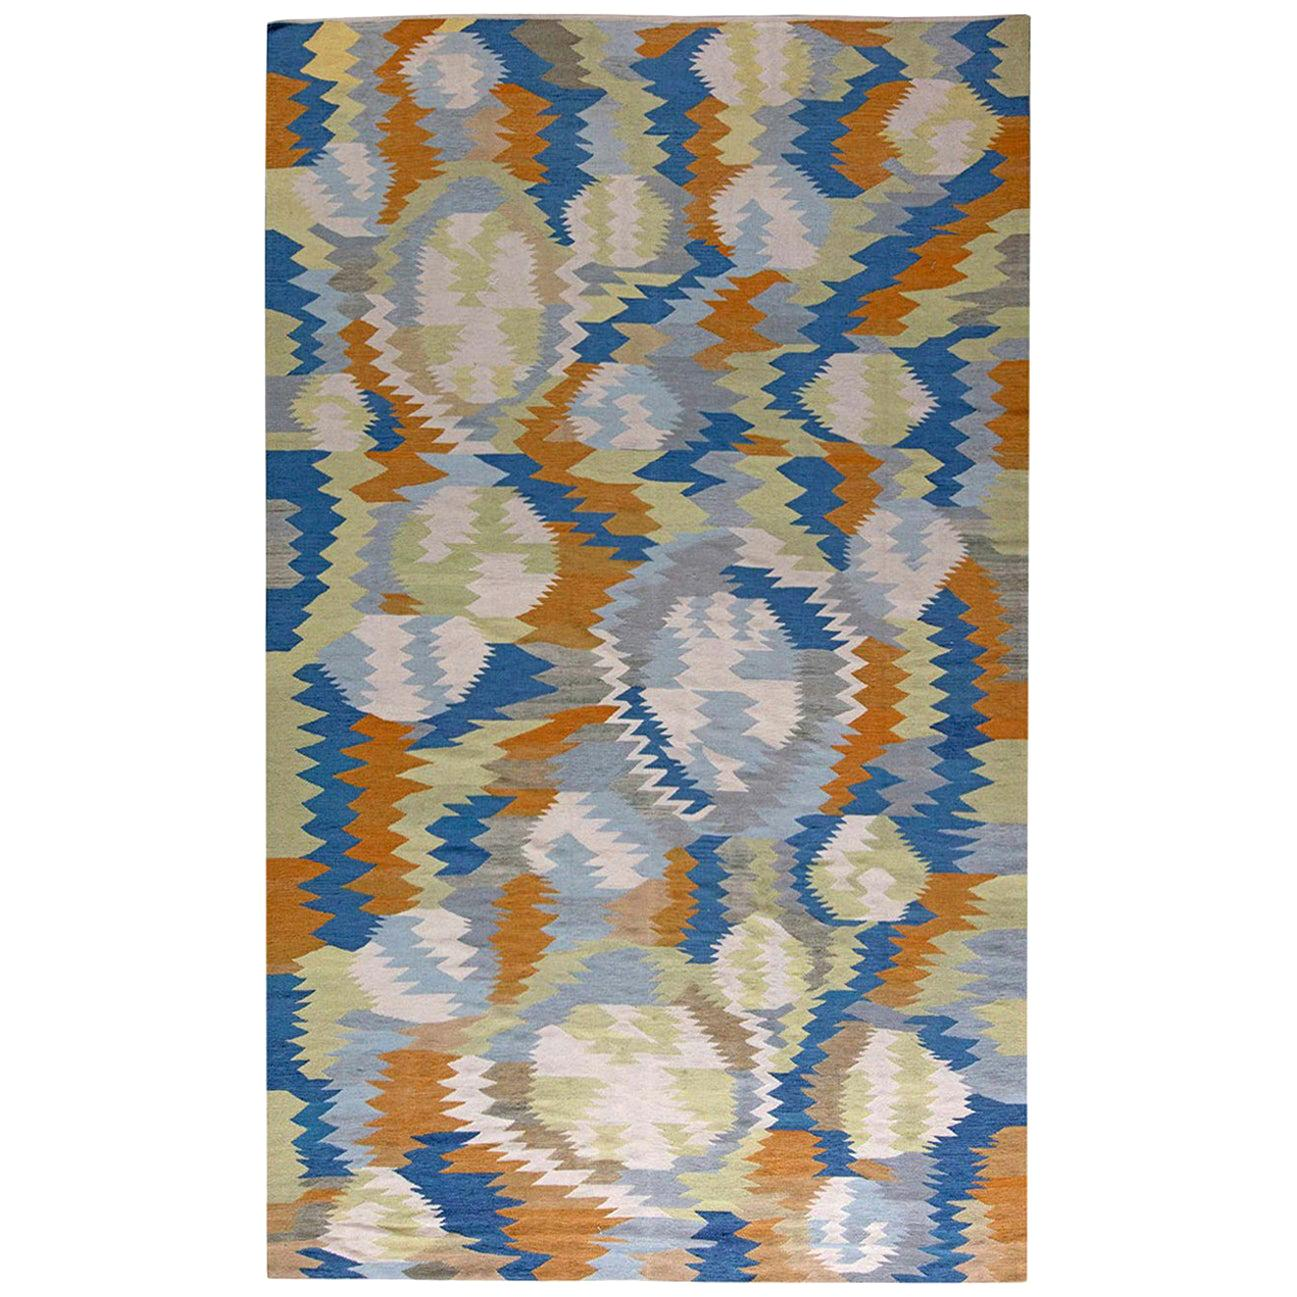 Doris Leslie Blau Collection Modern Swedish Inspired Blue, White and Orange Rug